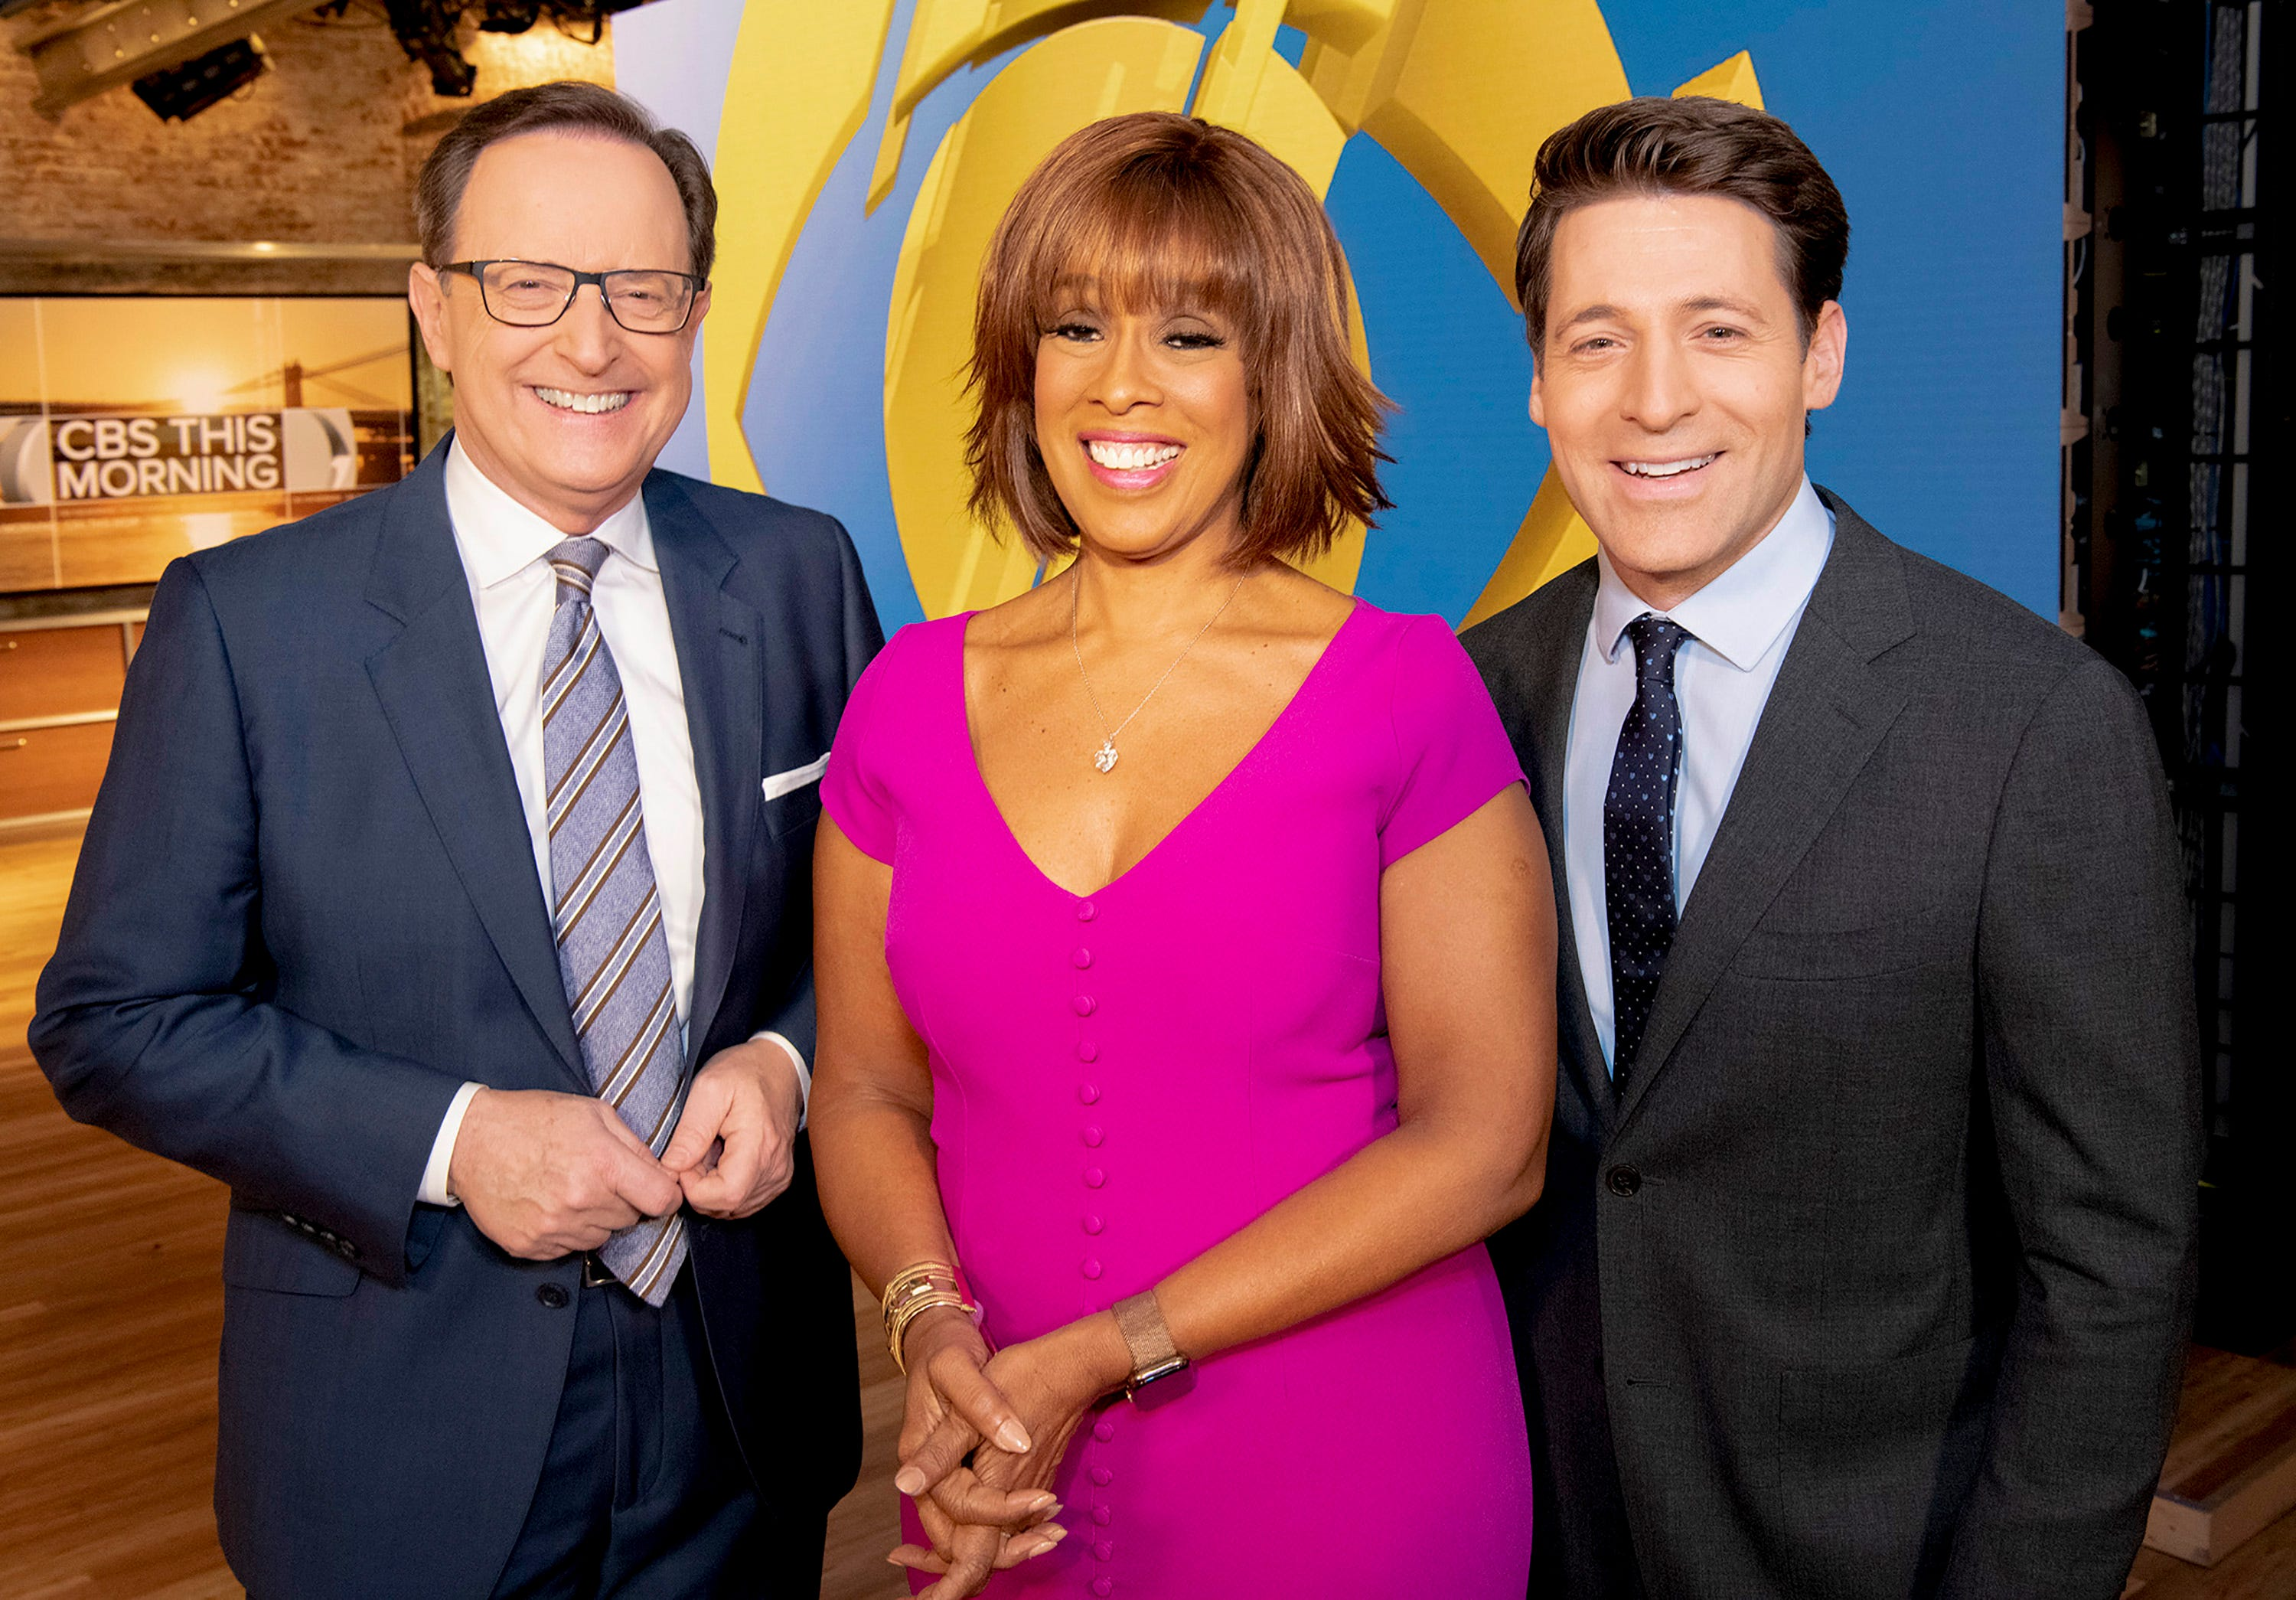 Cbs Keeps Gayle King But Makes Sweeping Anchor Changes Elsewhere